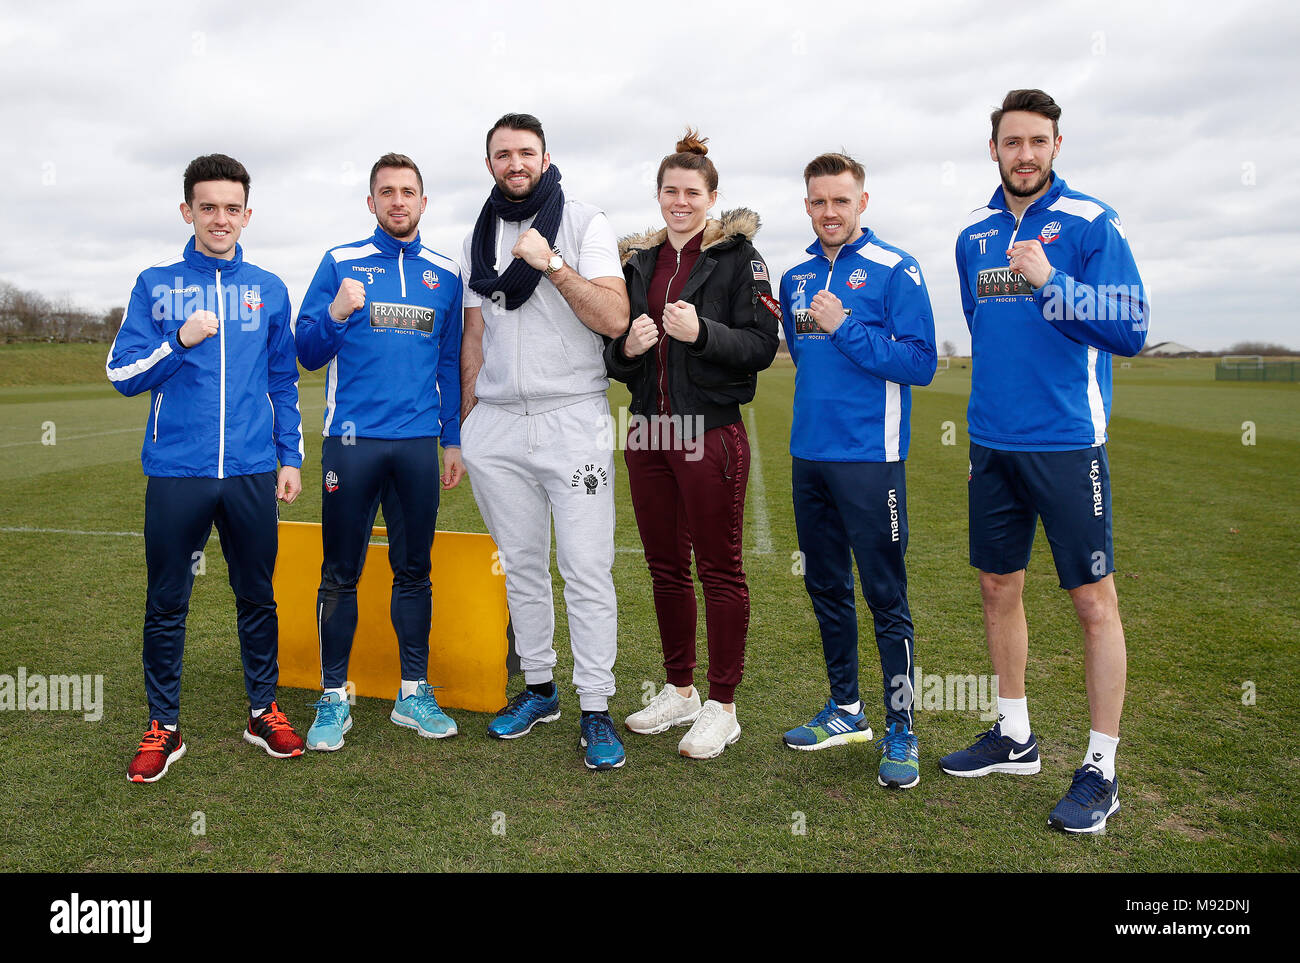 Hughie Fury (centre Left) Savannah Marshall (centre right) and Bolton Wanderers players (left-right) Zach Clough, Andrew Taylor, Craig Noone and Will Buckley, during a workout with Bolton Wanderers players at the BWFC Academy, Bolton. - Stock Image